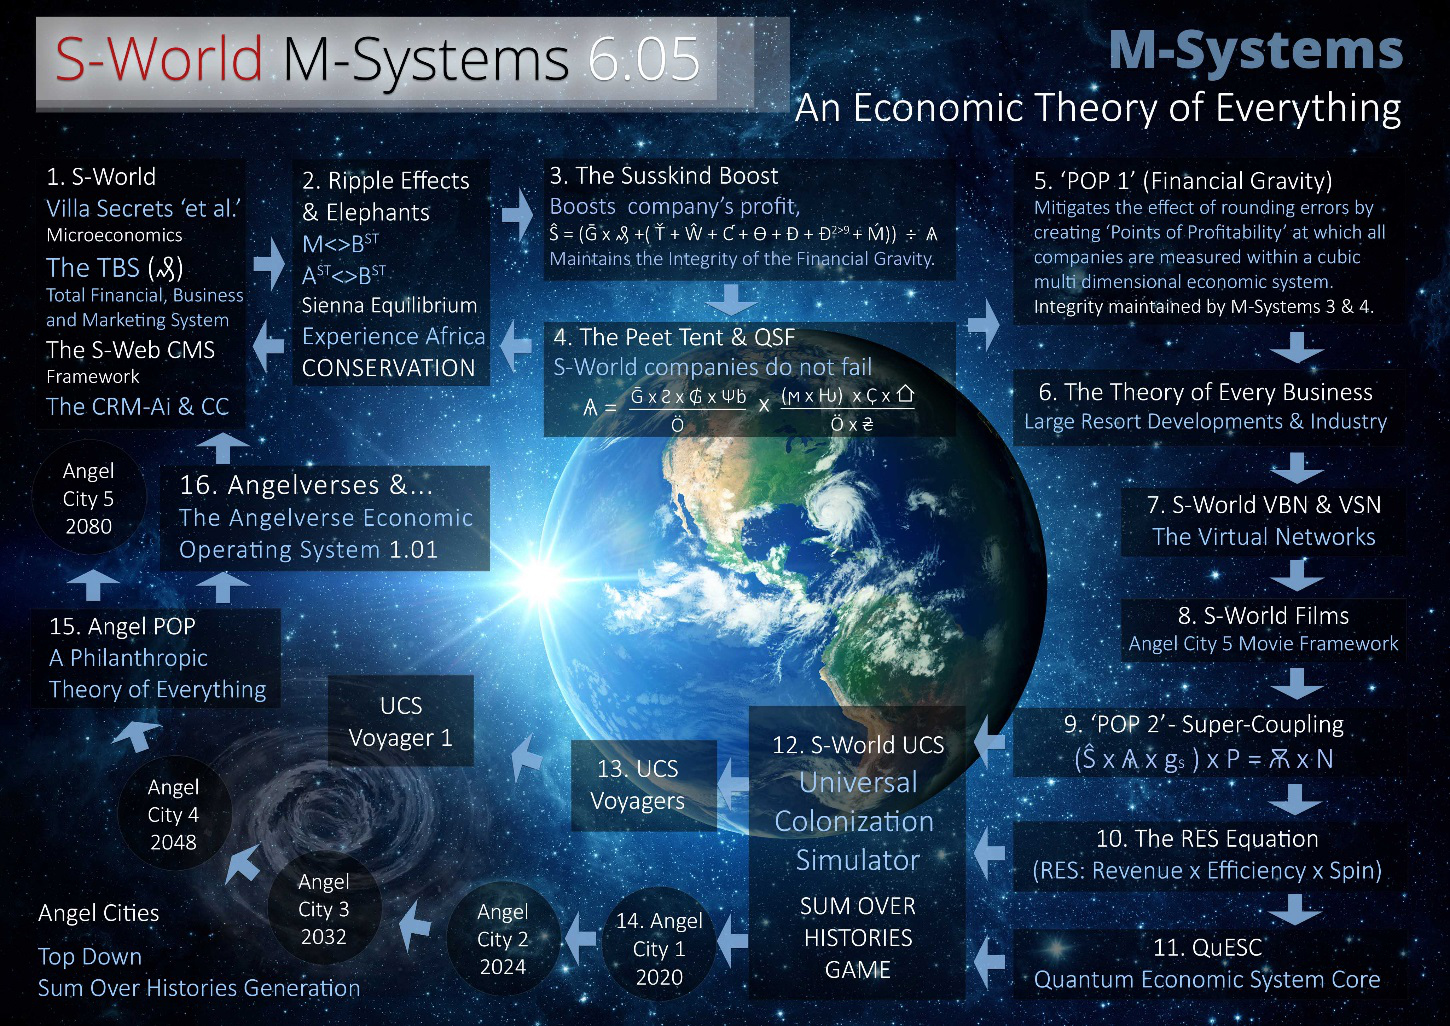 s-world-m-systems-Economic Theory of Everything (E-TOE)